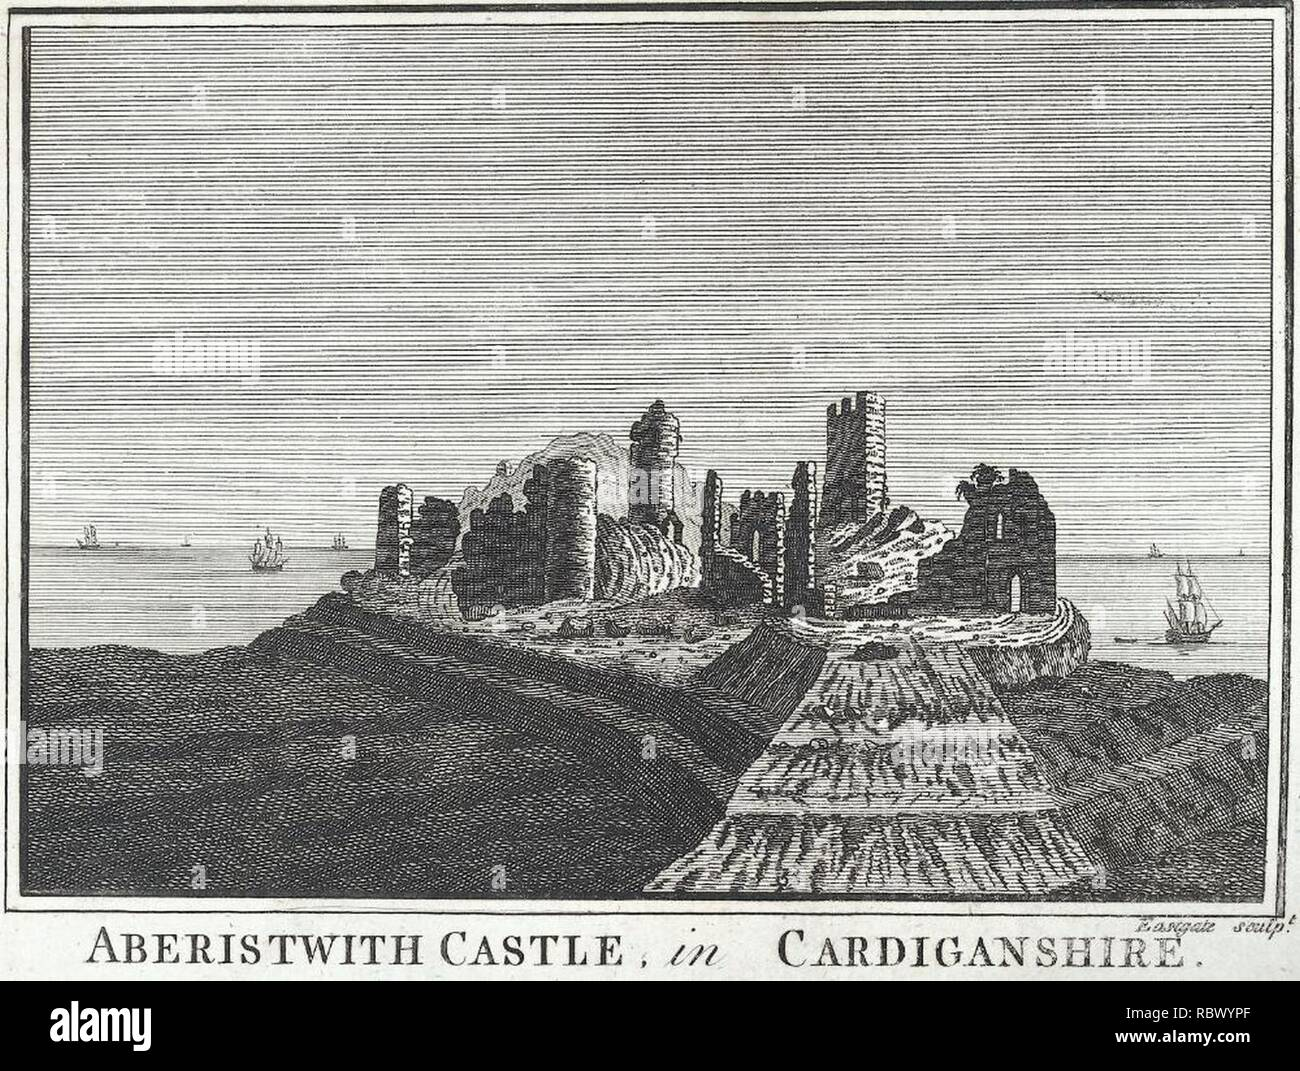 Aberistwith Castle, in Cardiganshire (1132234). - Stock Image